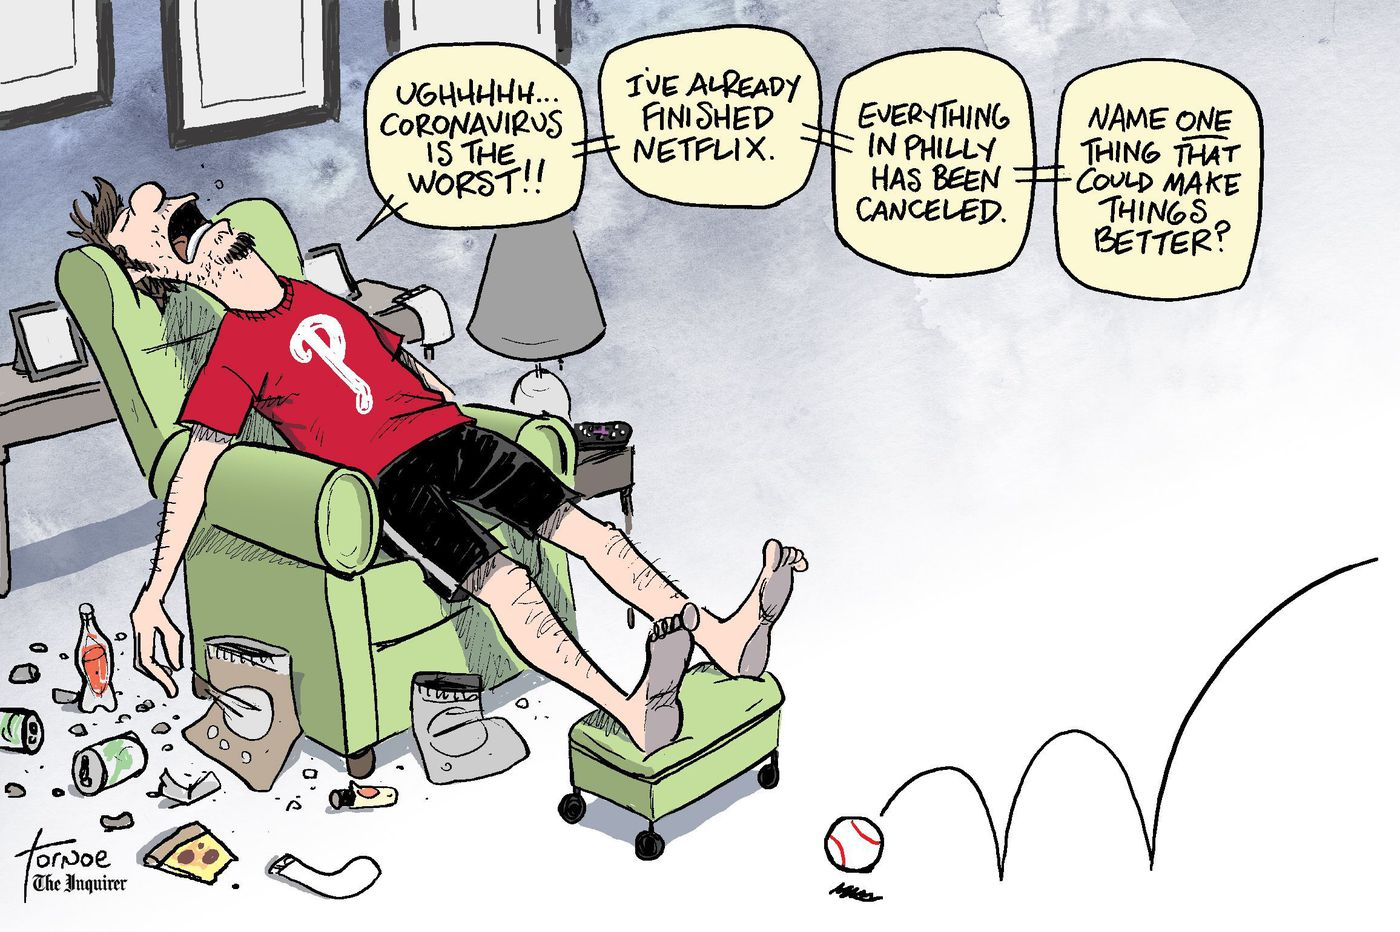 Cartoon: There's a live Phillies game on TV this weekend. For real. No kidding.